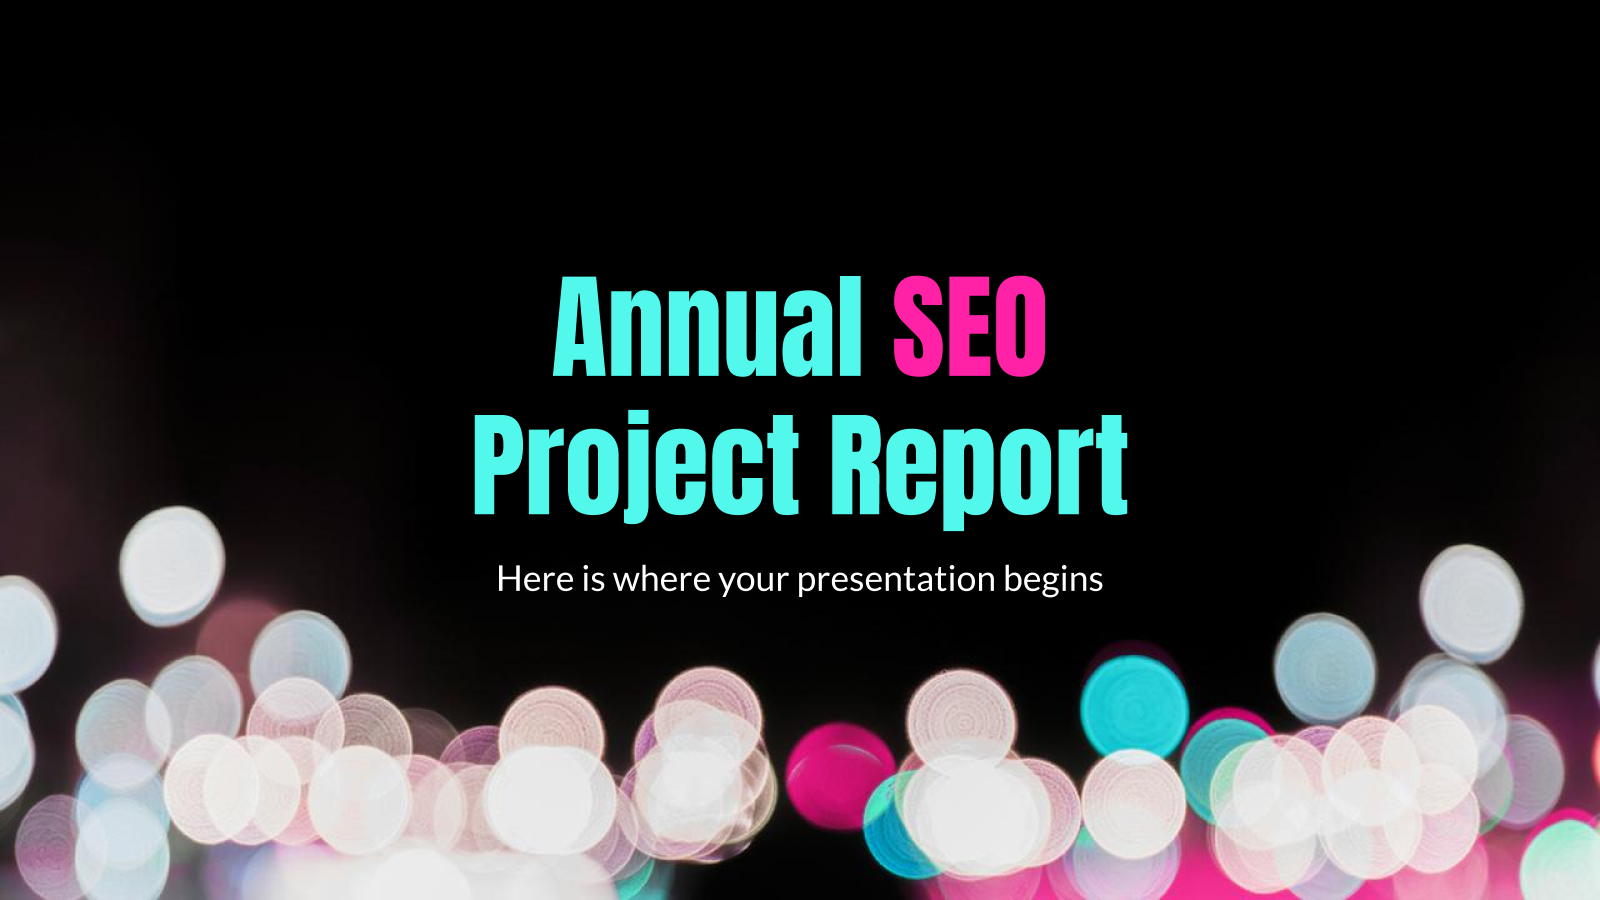 Annual SEO Project Report presentation template